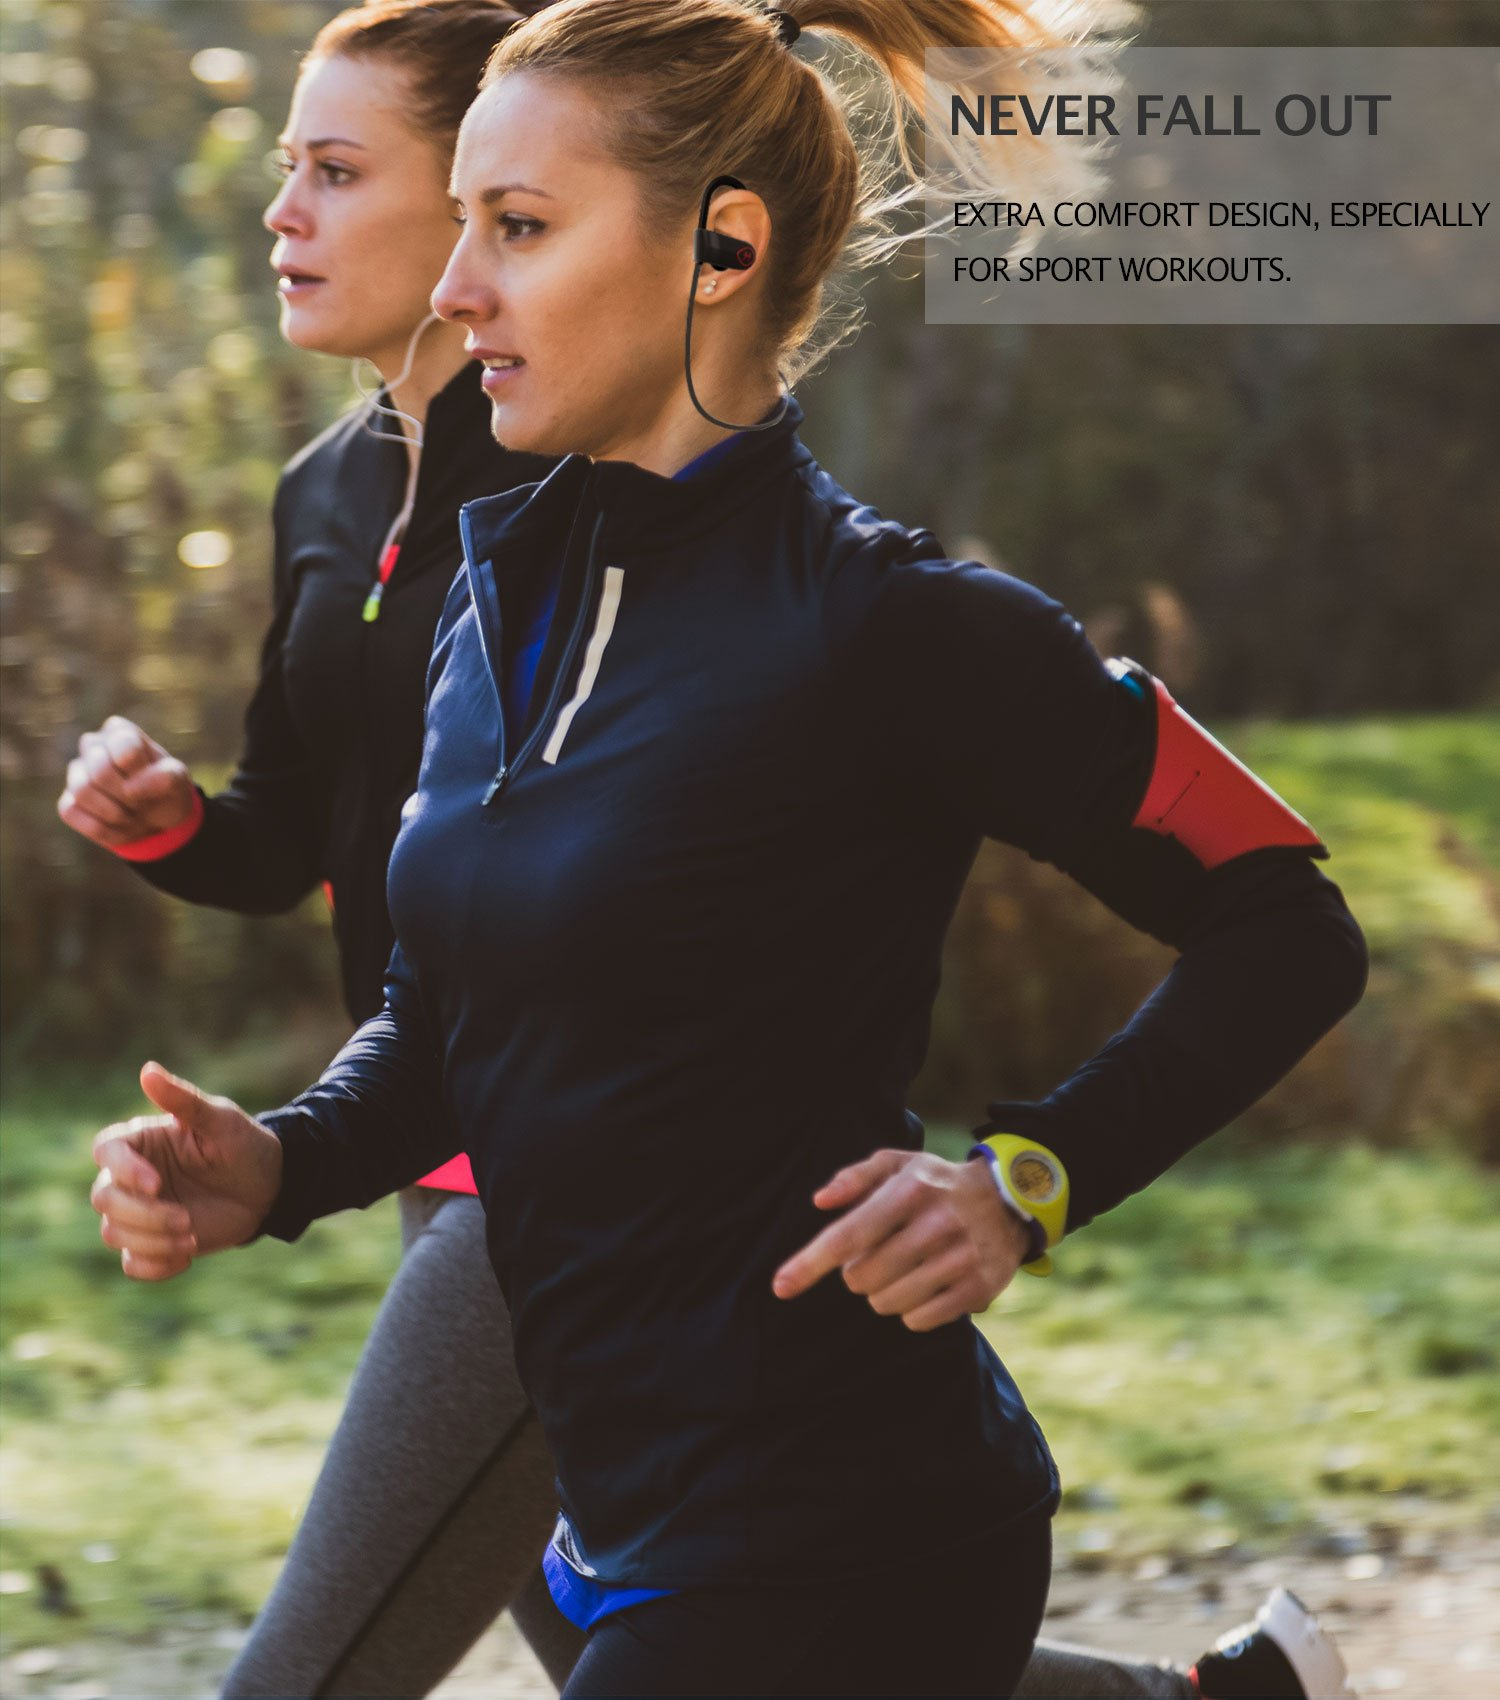 ONE DAY SALE!! - MX10 Bluetooth Iphone Headphones - Ear Buds Wireless Headphones - Designed For Running and Sport Workouts - Built-in Microphone With Noise Cancellation - IPX7 WaterProof by MultiTed (Image #2)